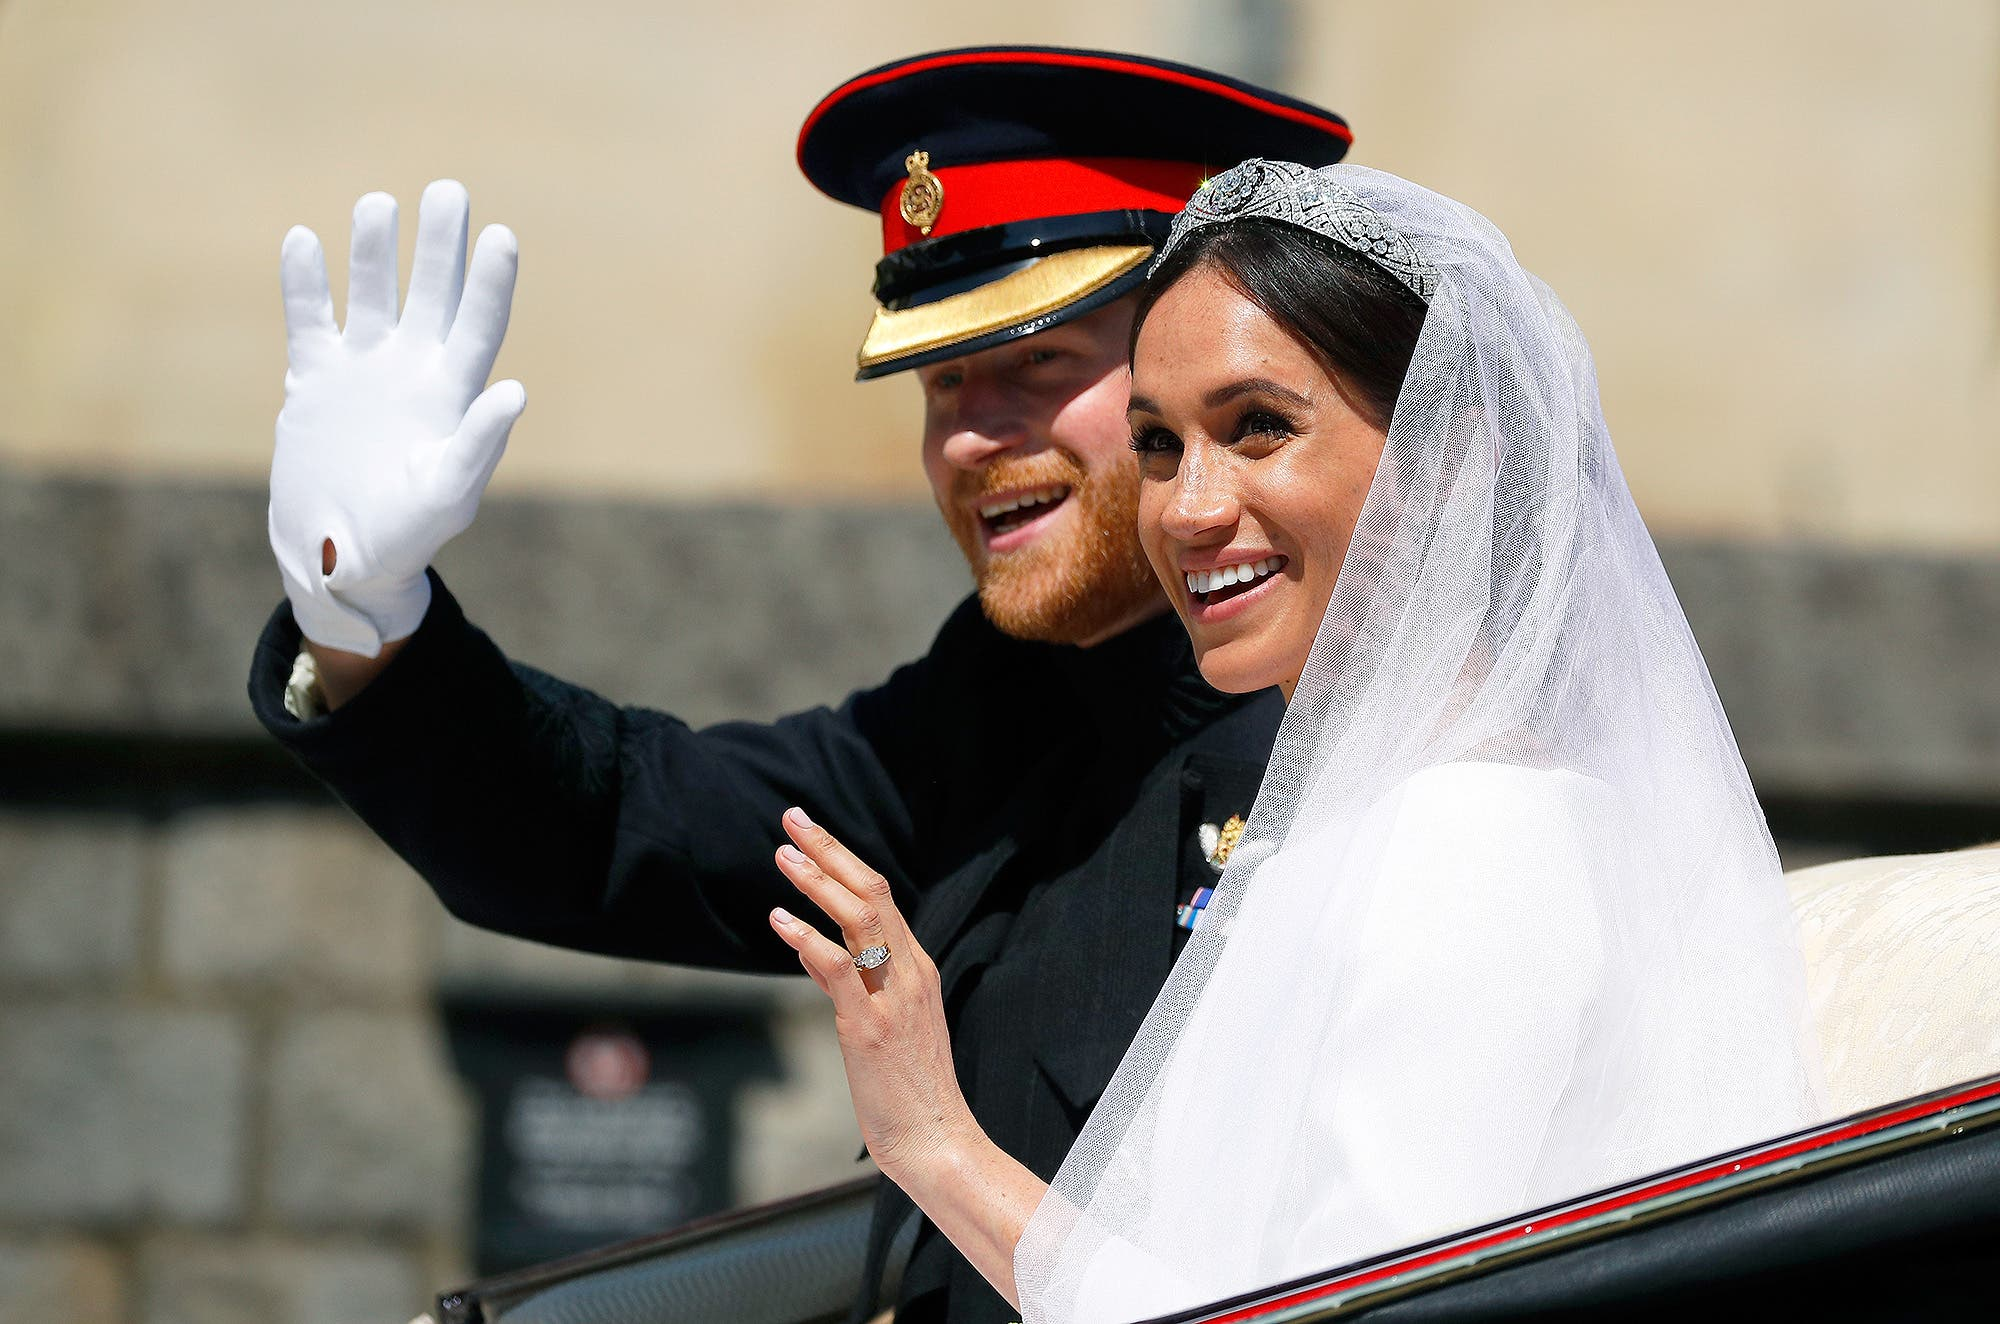 meghan-markle-prince-harry-royal-wedding-luncheon-details-procession